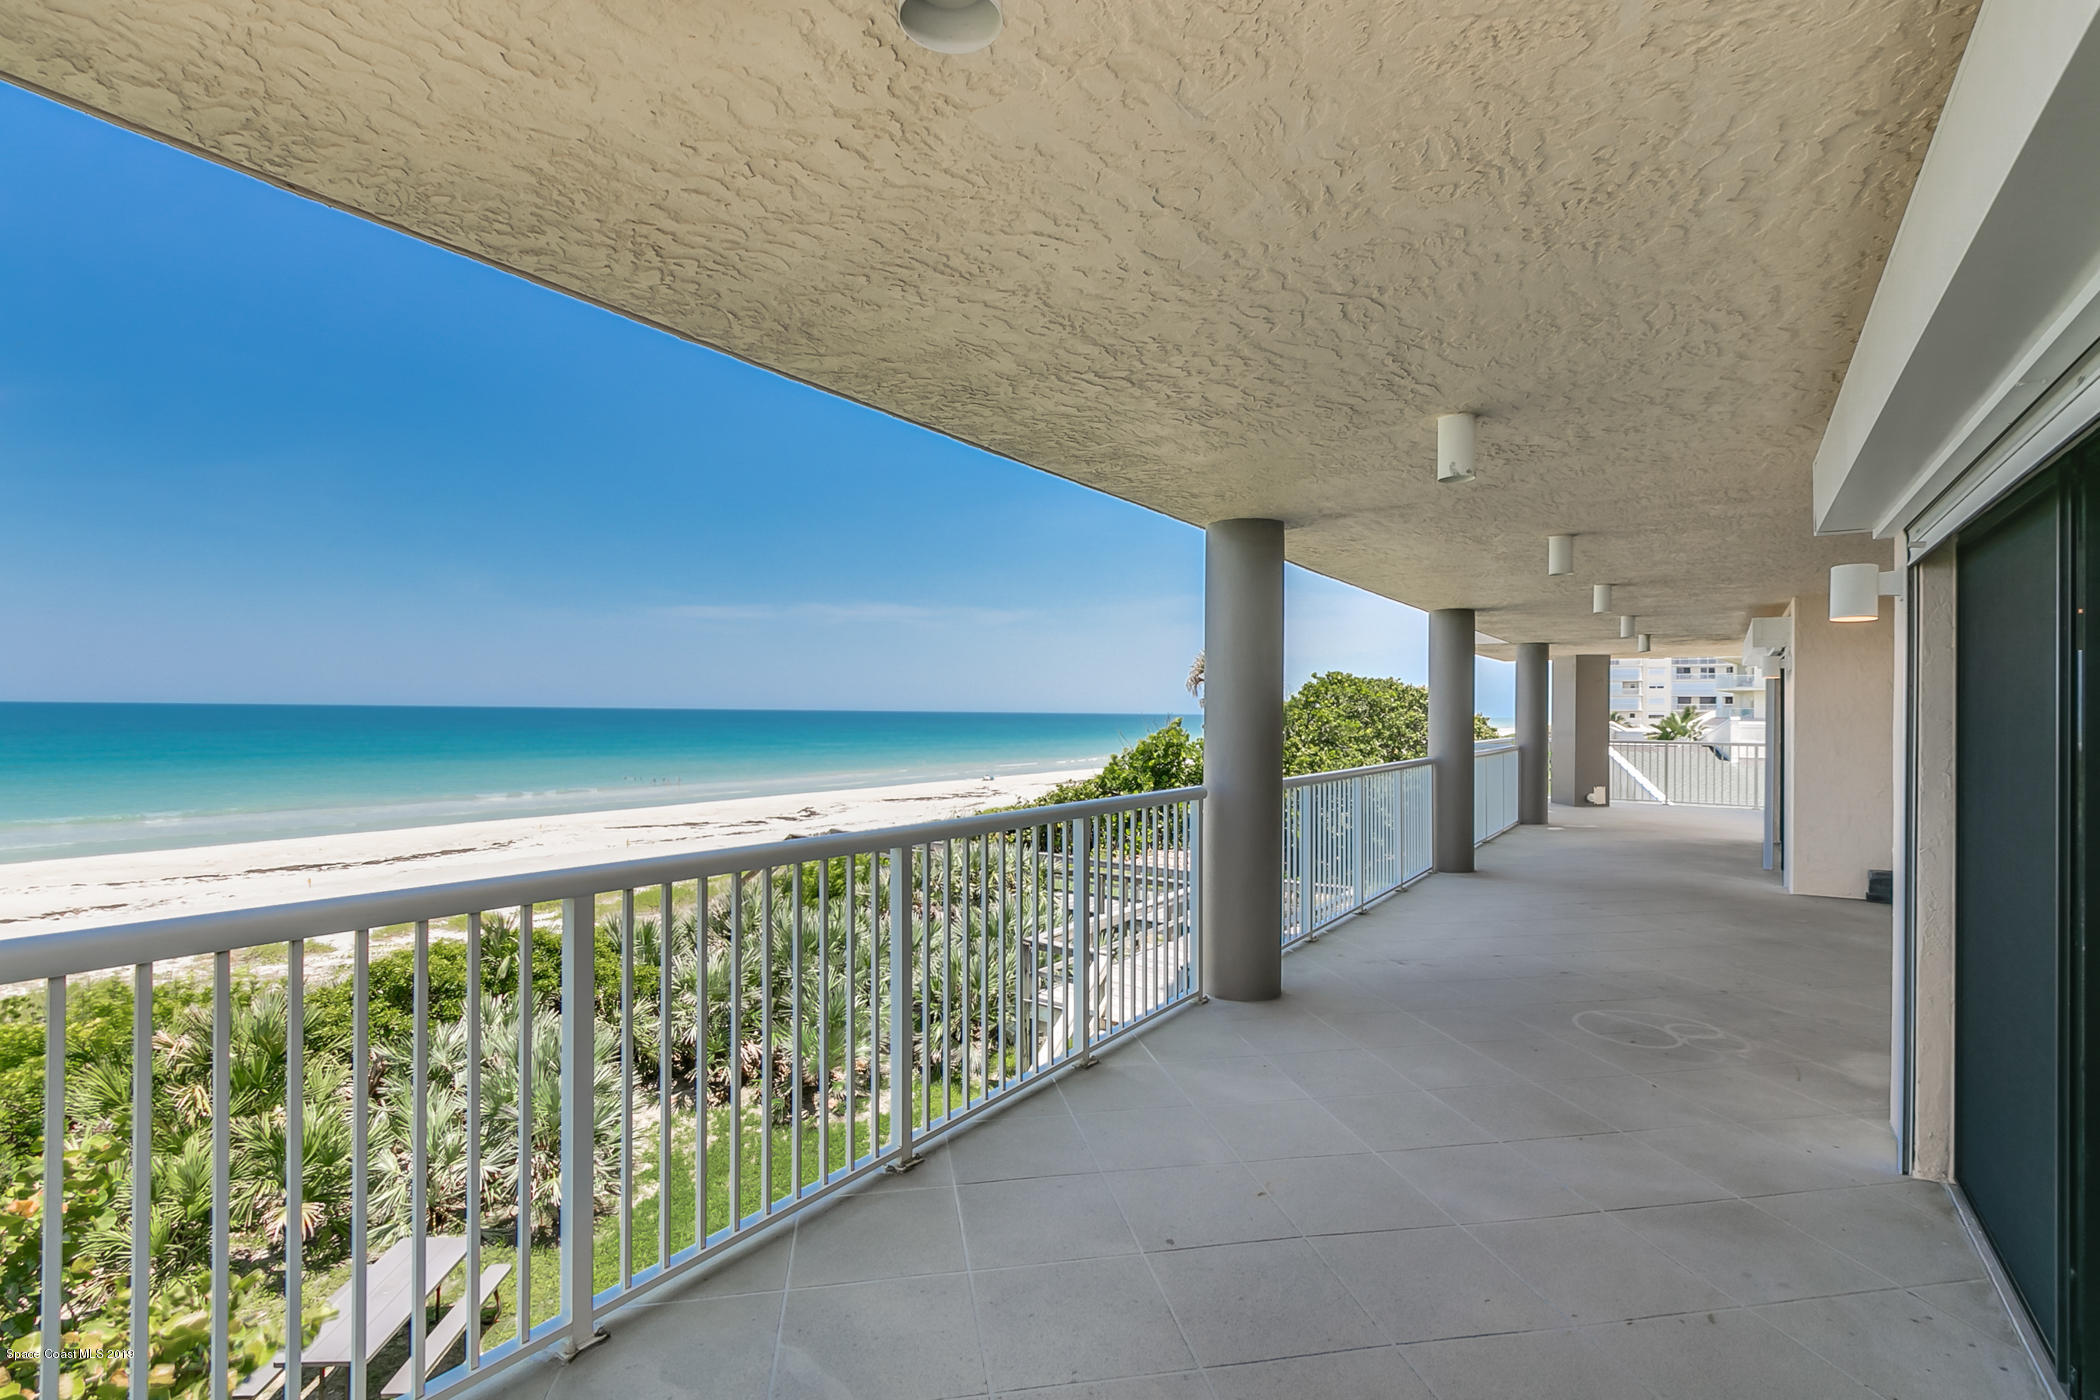 Single Family Homes for Sale at 989 N Highway A1a Indialantic, Florida 32903 United States